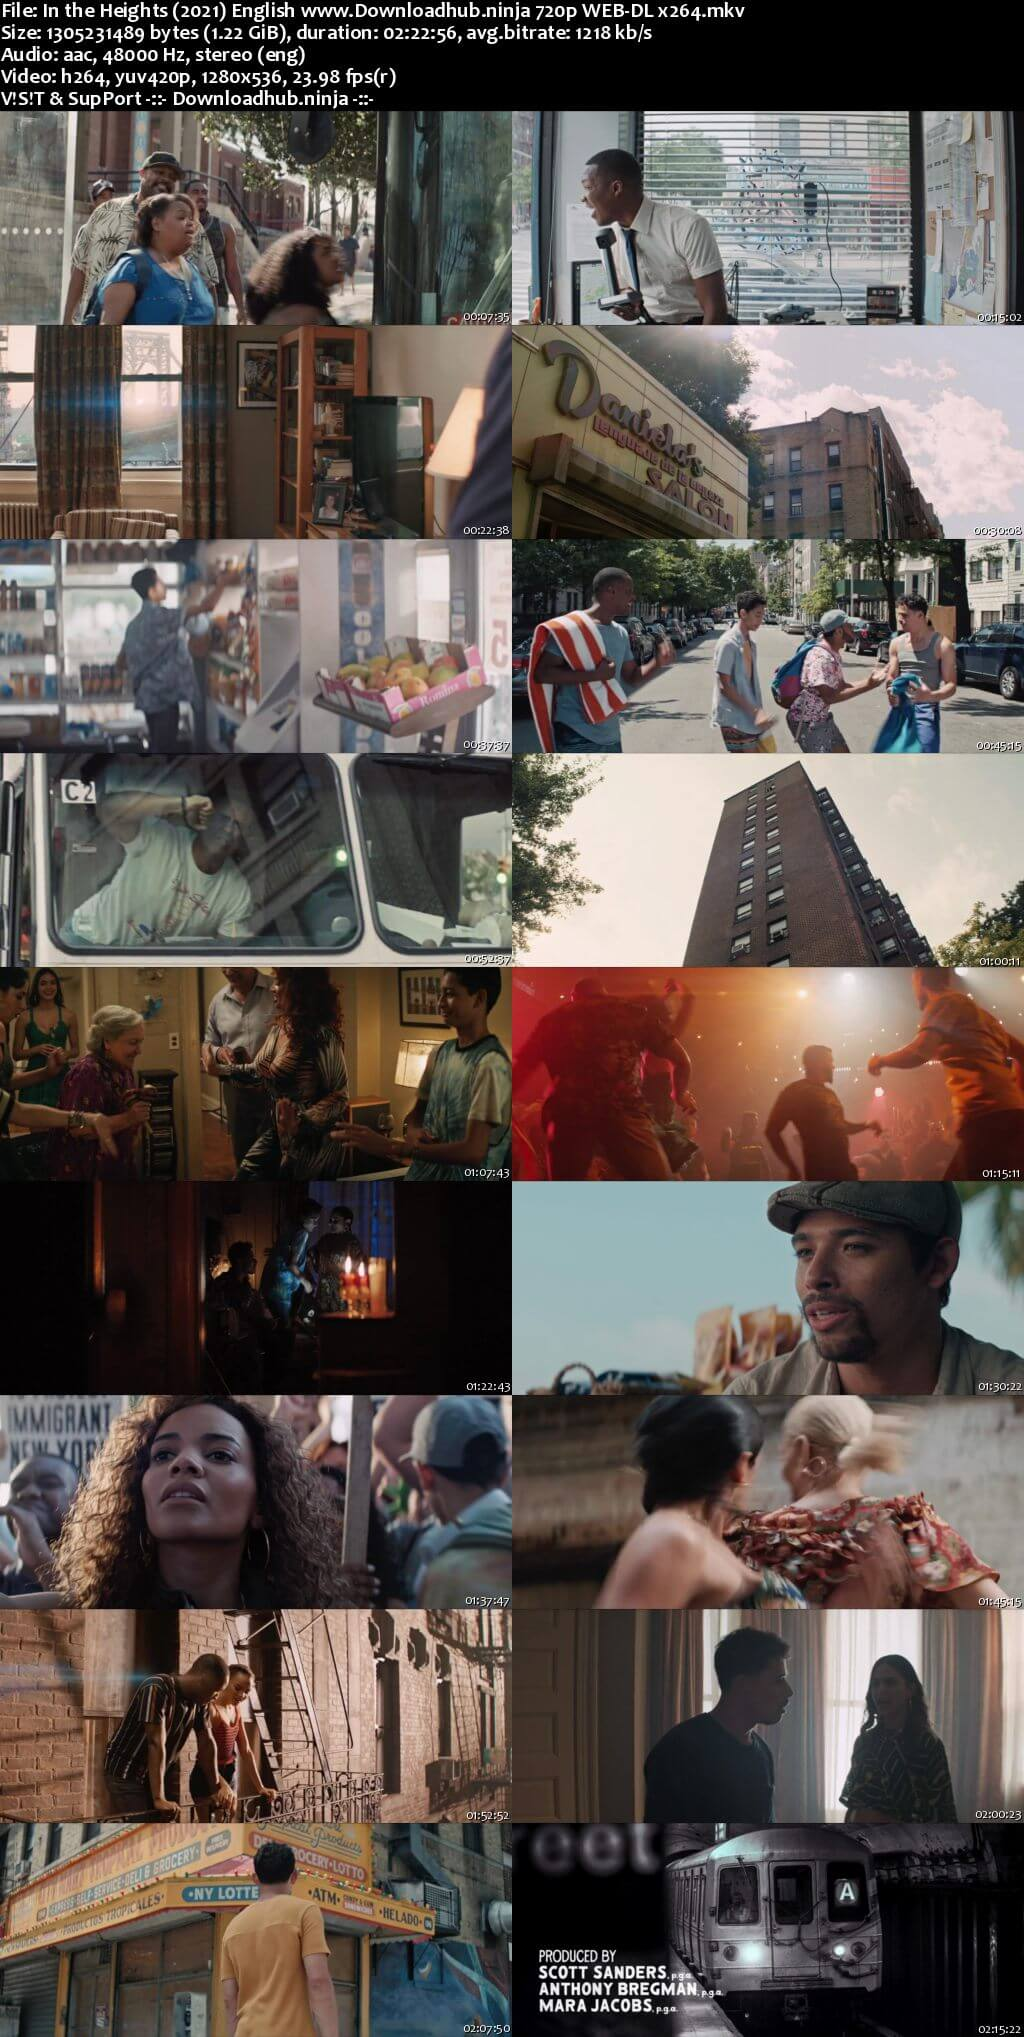 In the Heights 2021 English 720p Web-DL 1.2GB